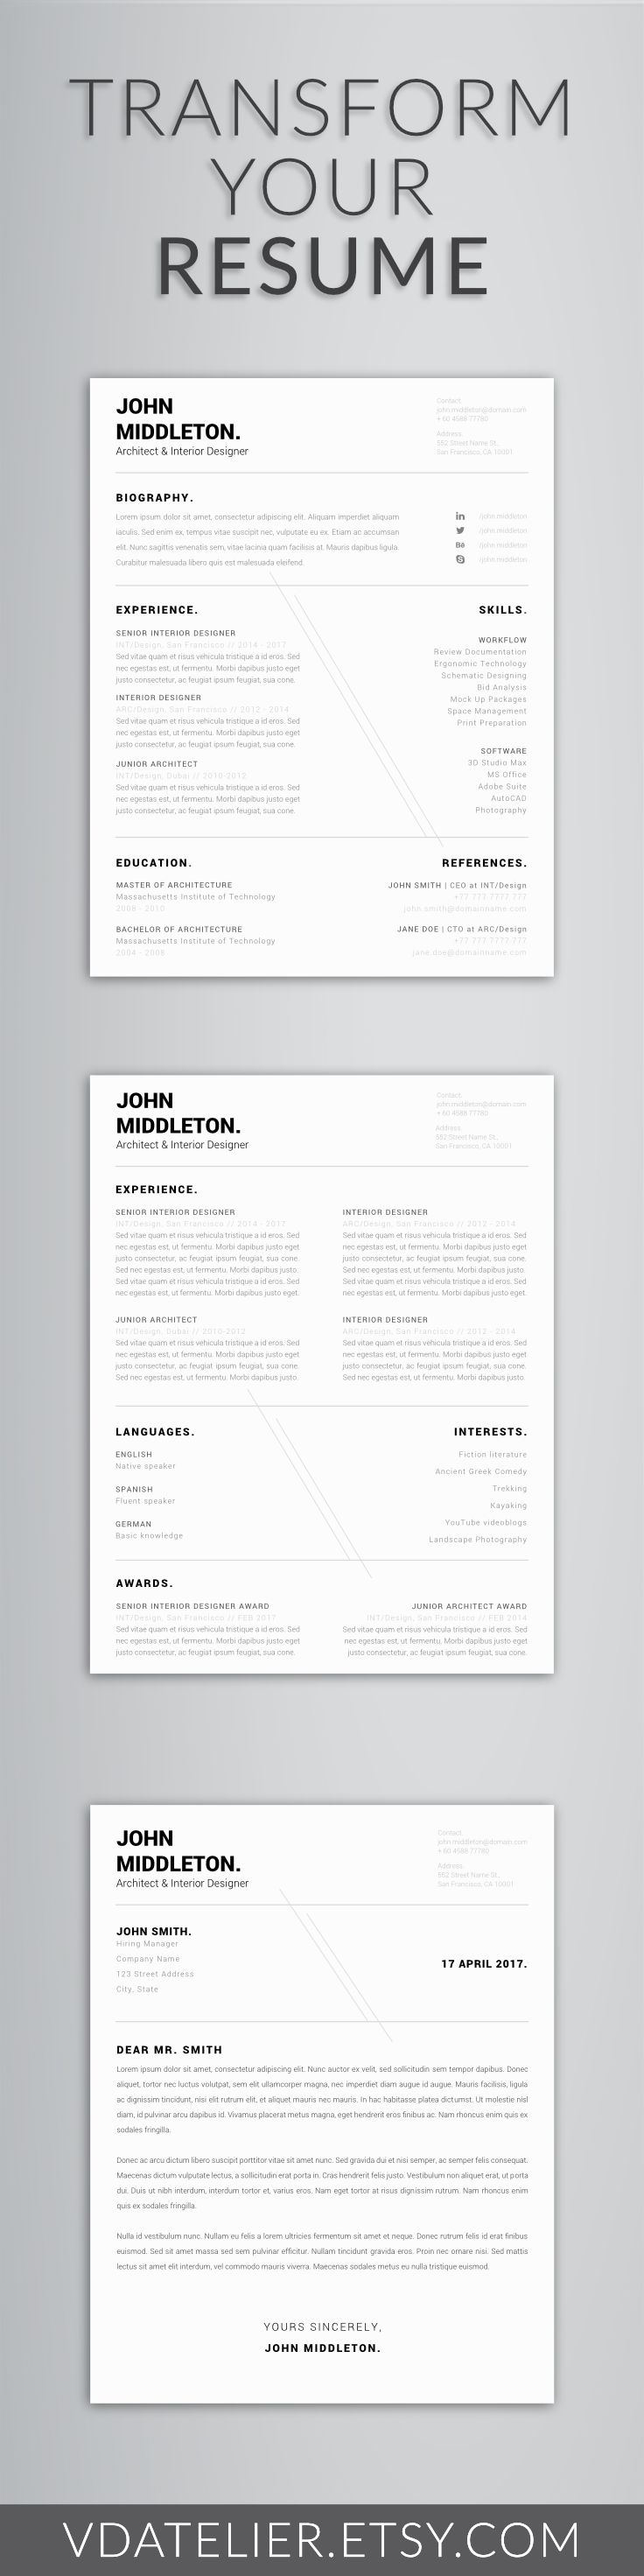 Professional Modern Resume Template for Word | Men Resume | Cover Letter, Curriculum Vitae | US Letter & A4 | 1,2 Page Resume